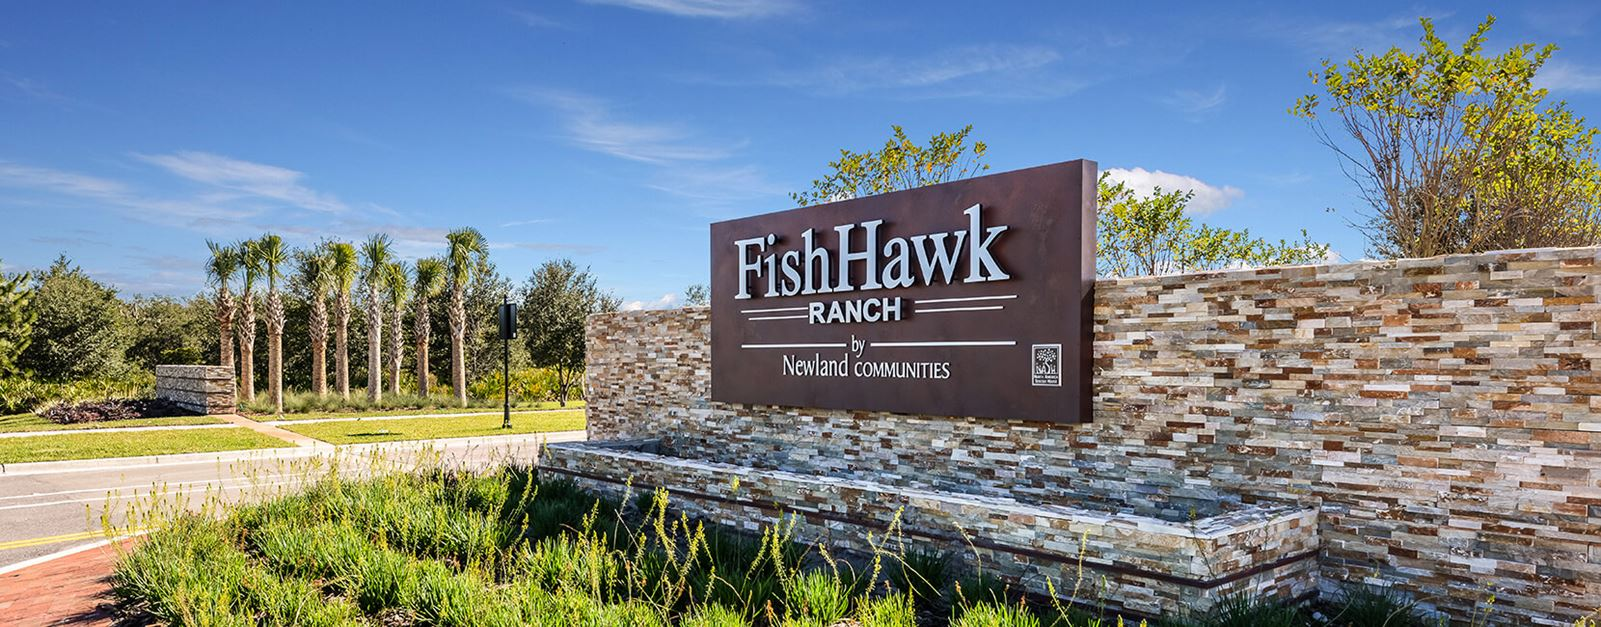 FishHawk Ranch